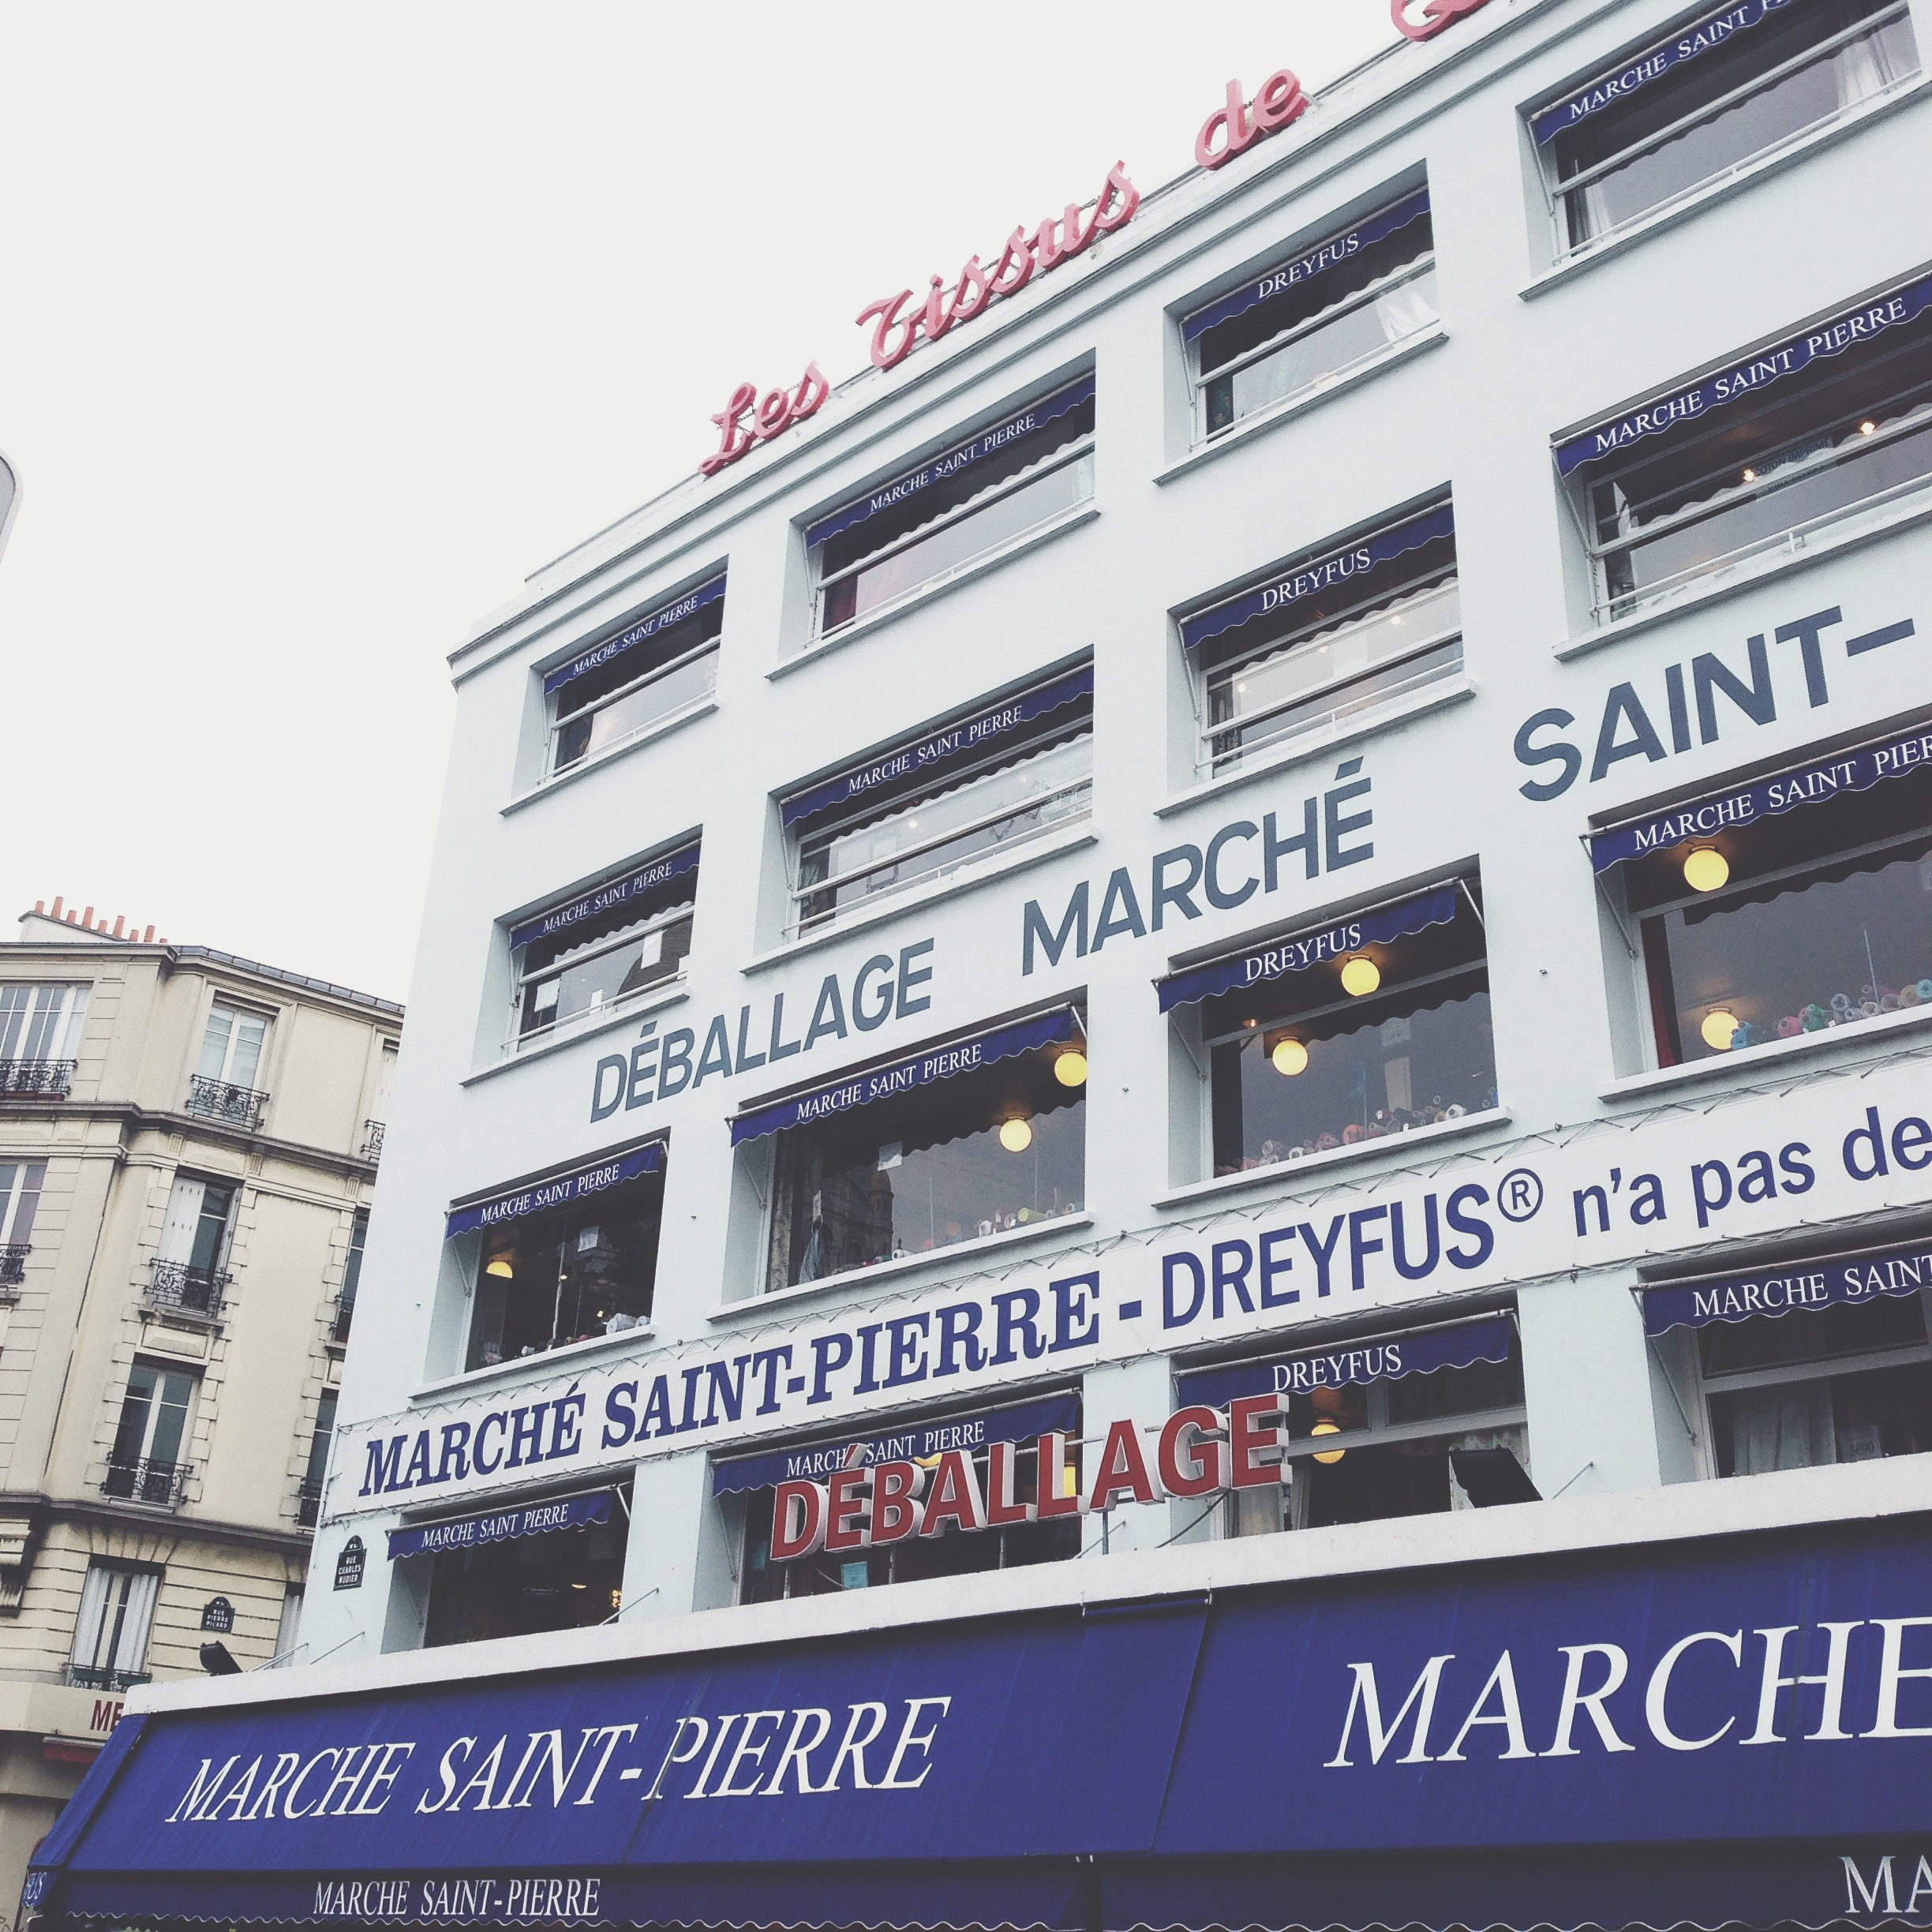 Marché Saint Pierre, where I buy some of my fabrics & all of my zippers